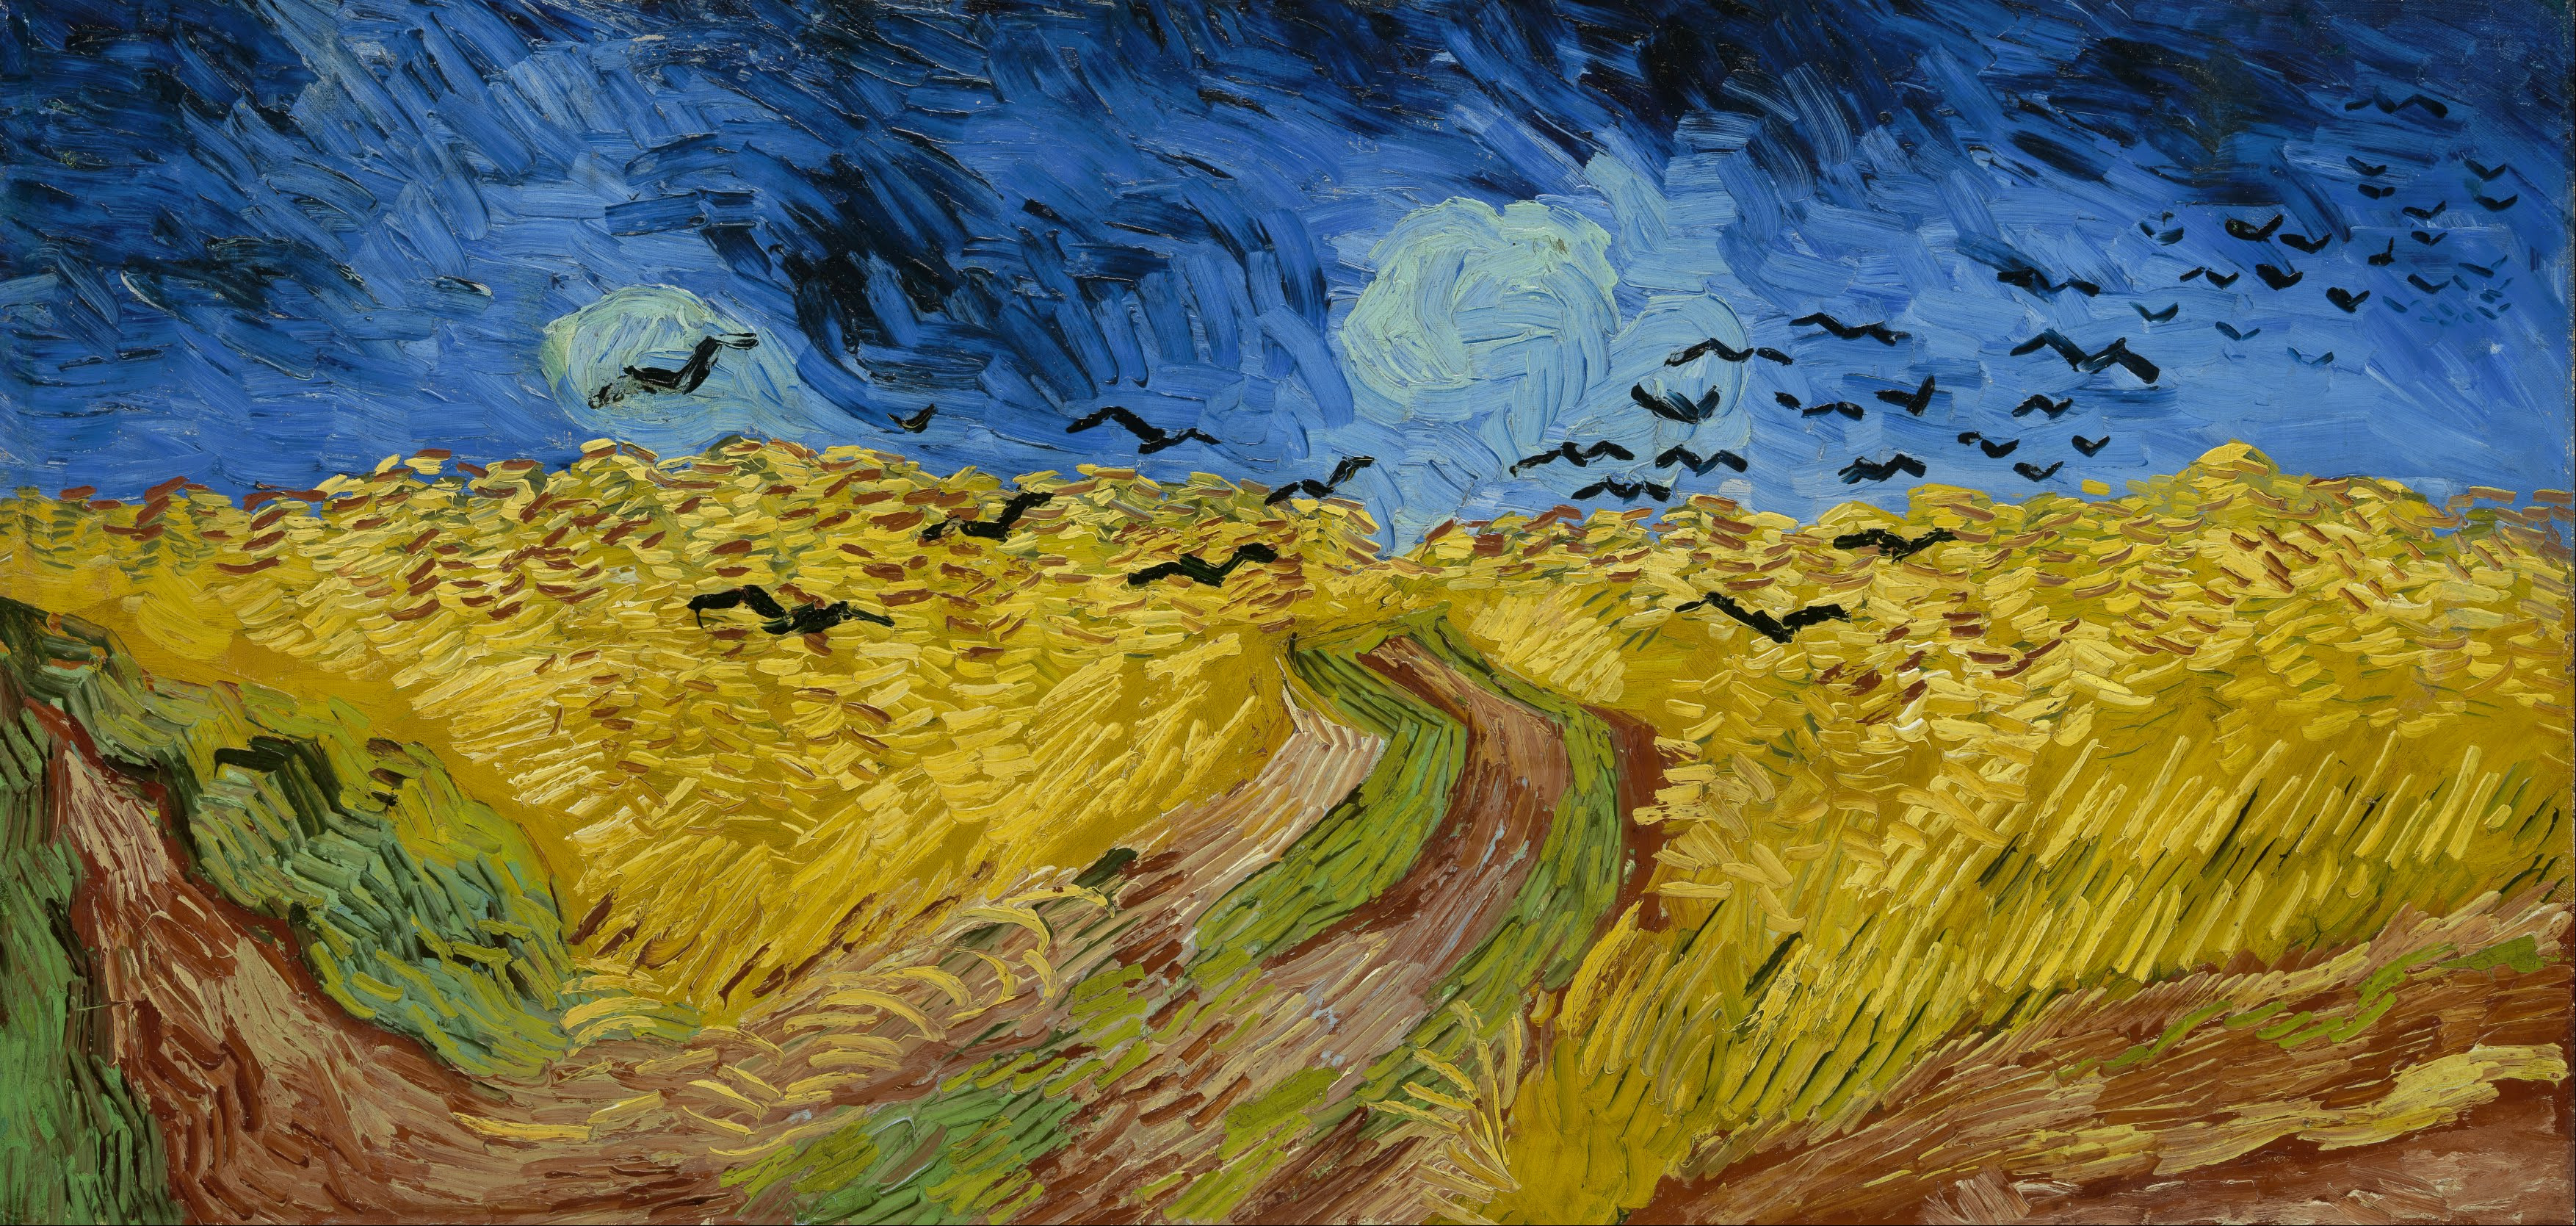 vincent van gogh  van gogh museum amsterdam an expansive painting of a wheatfield a footpath going through the centre underneath dark